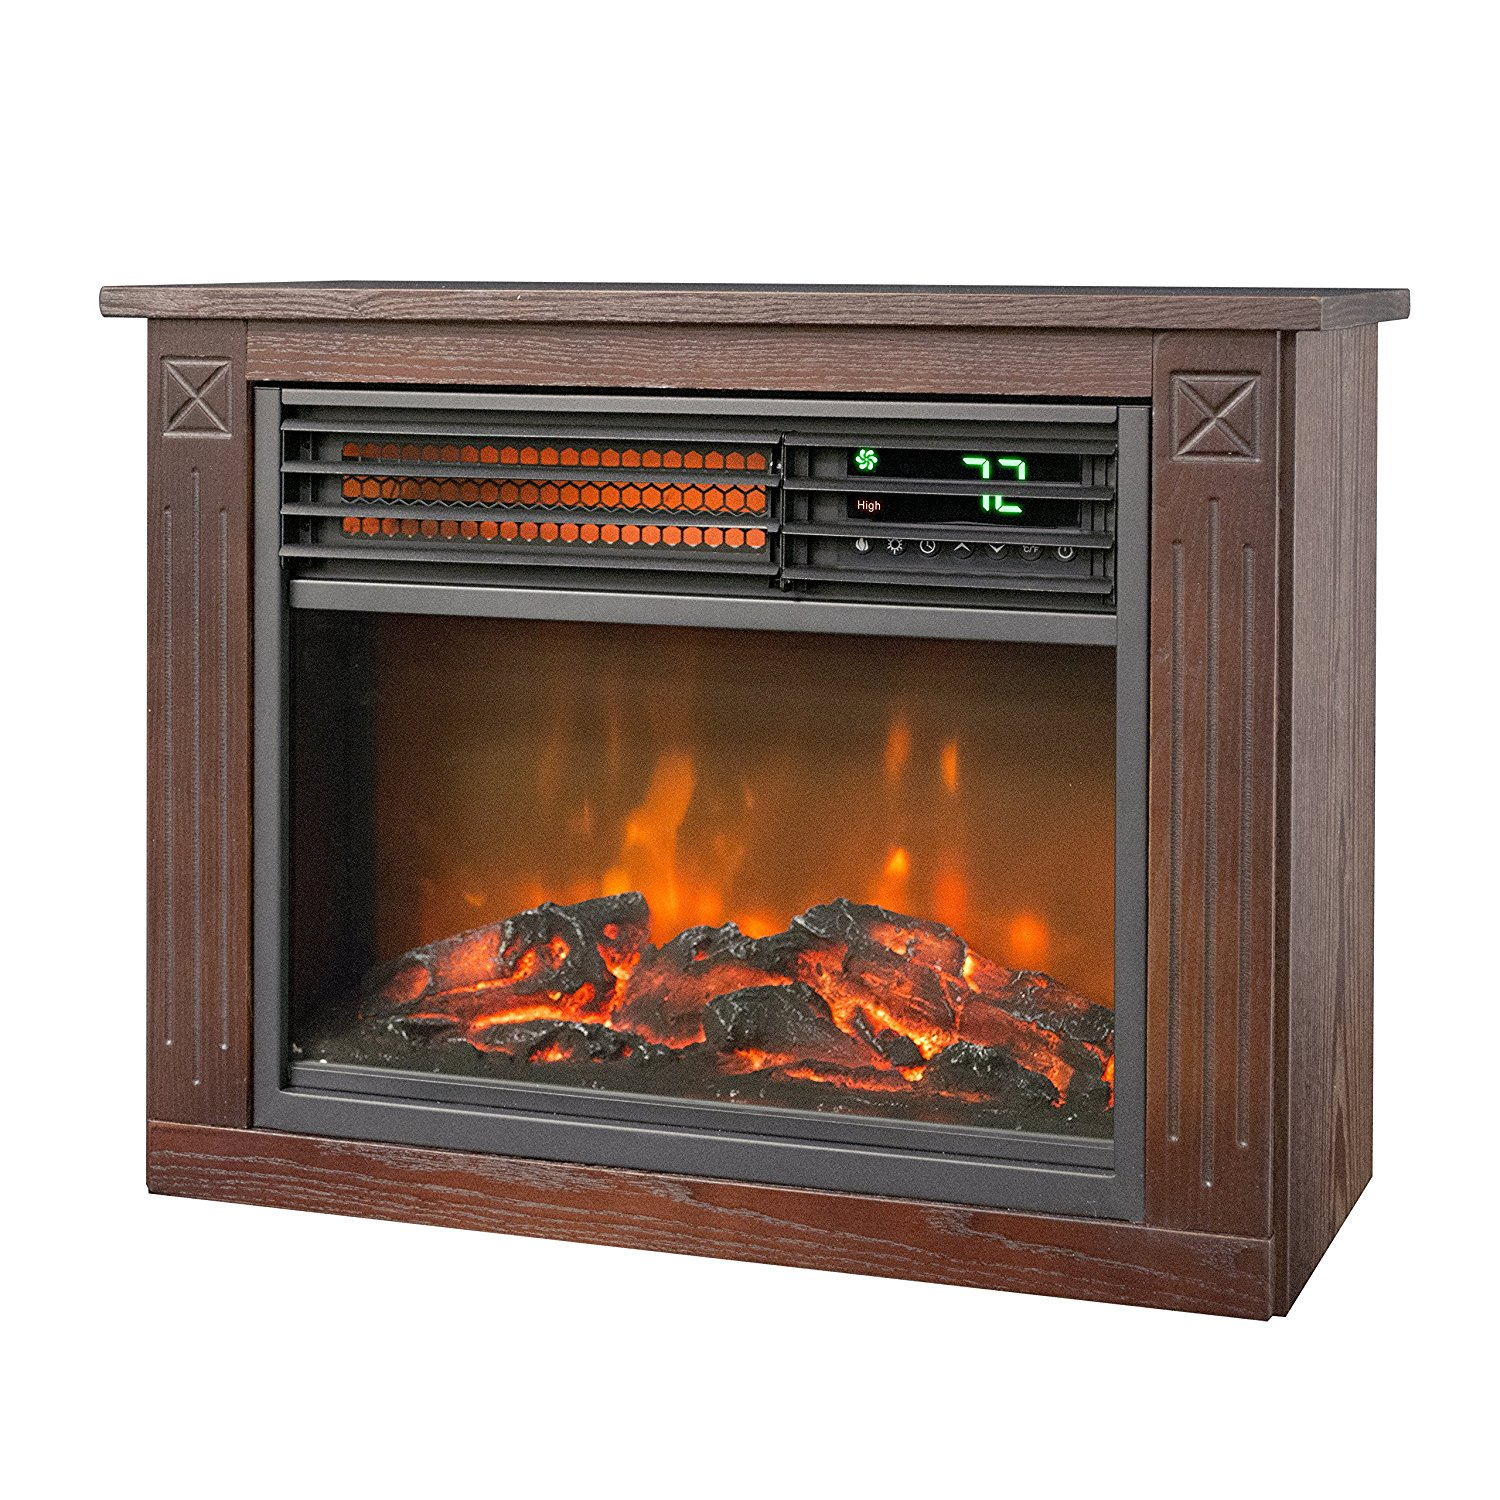 LifeSmart Infrared Fireplace Heater